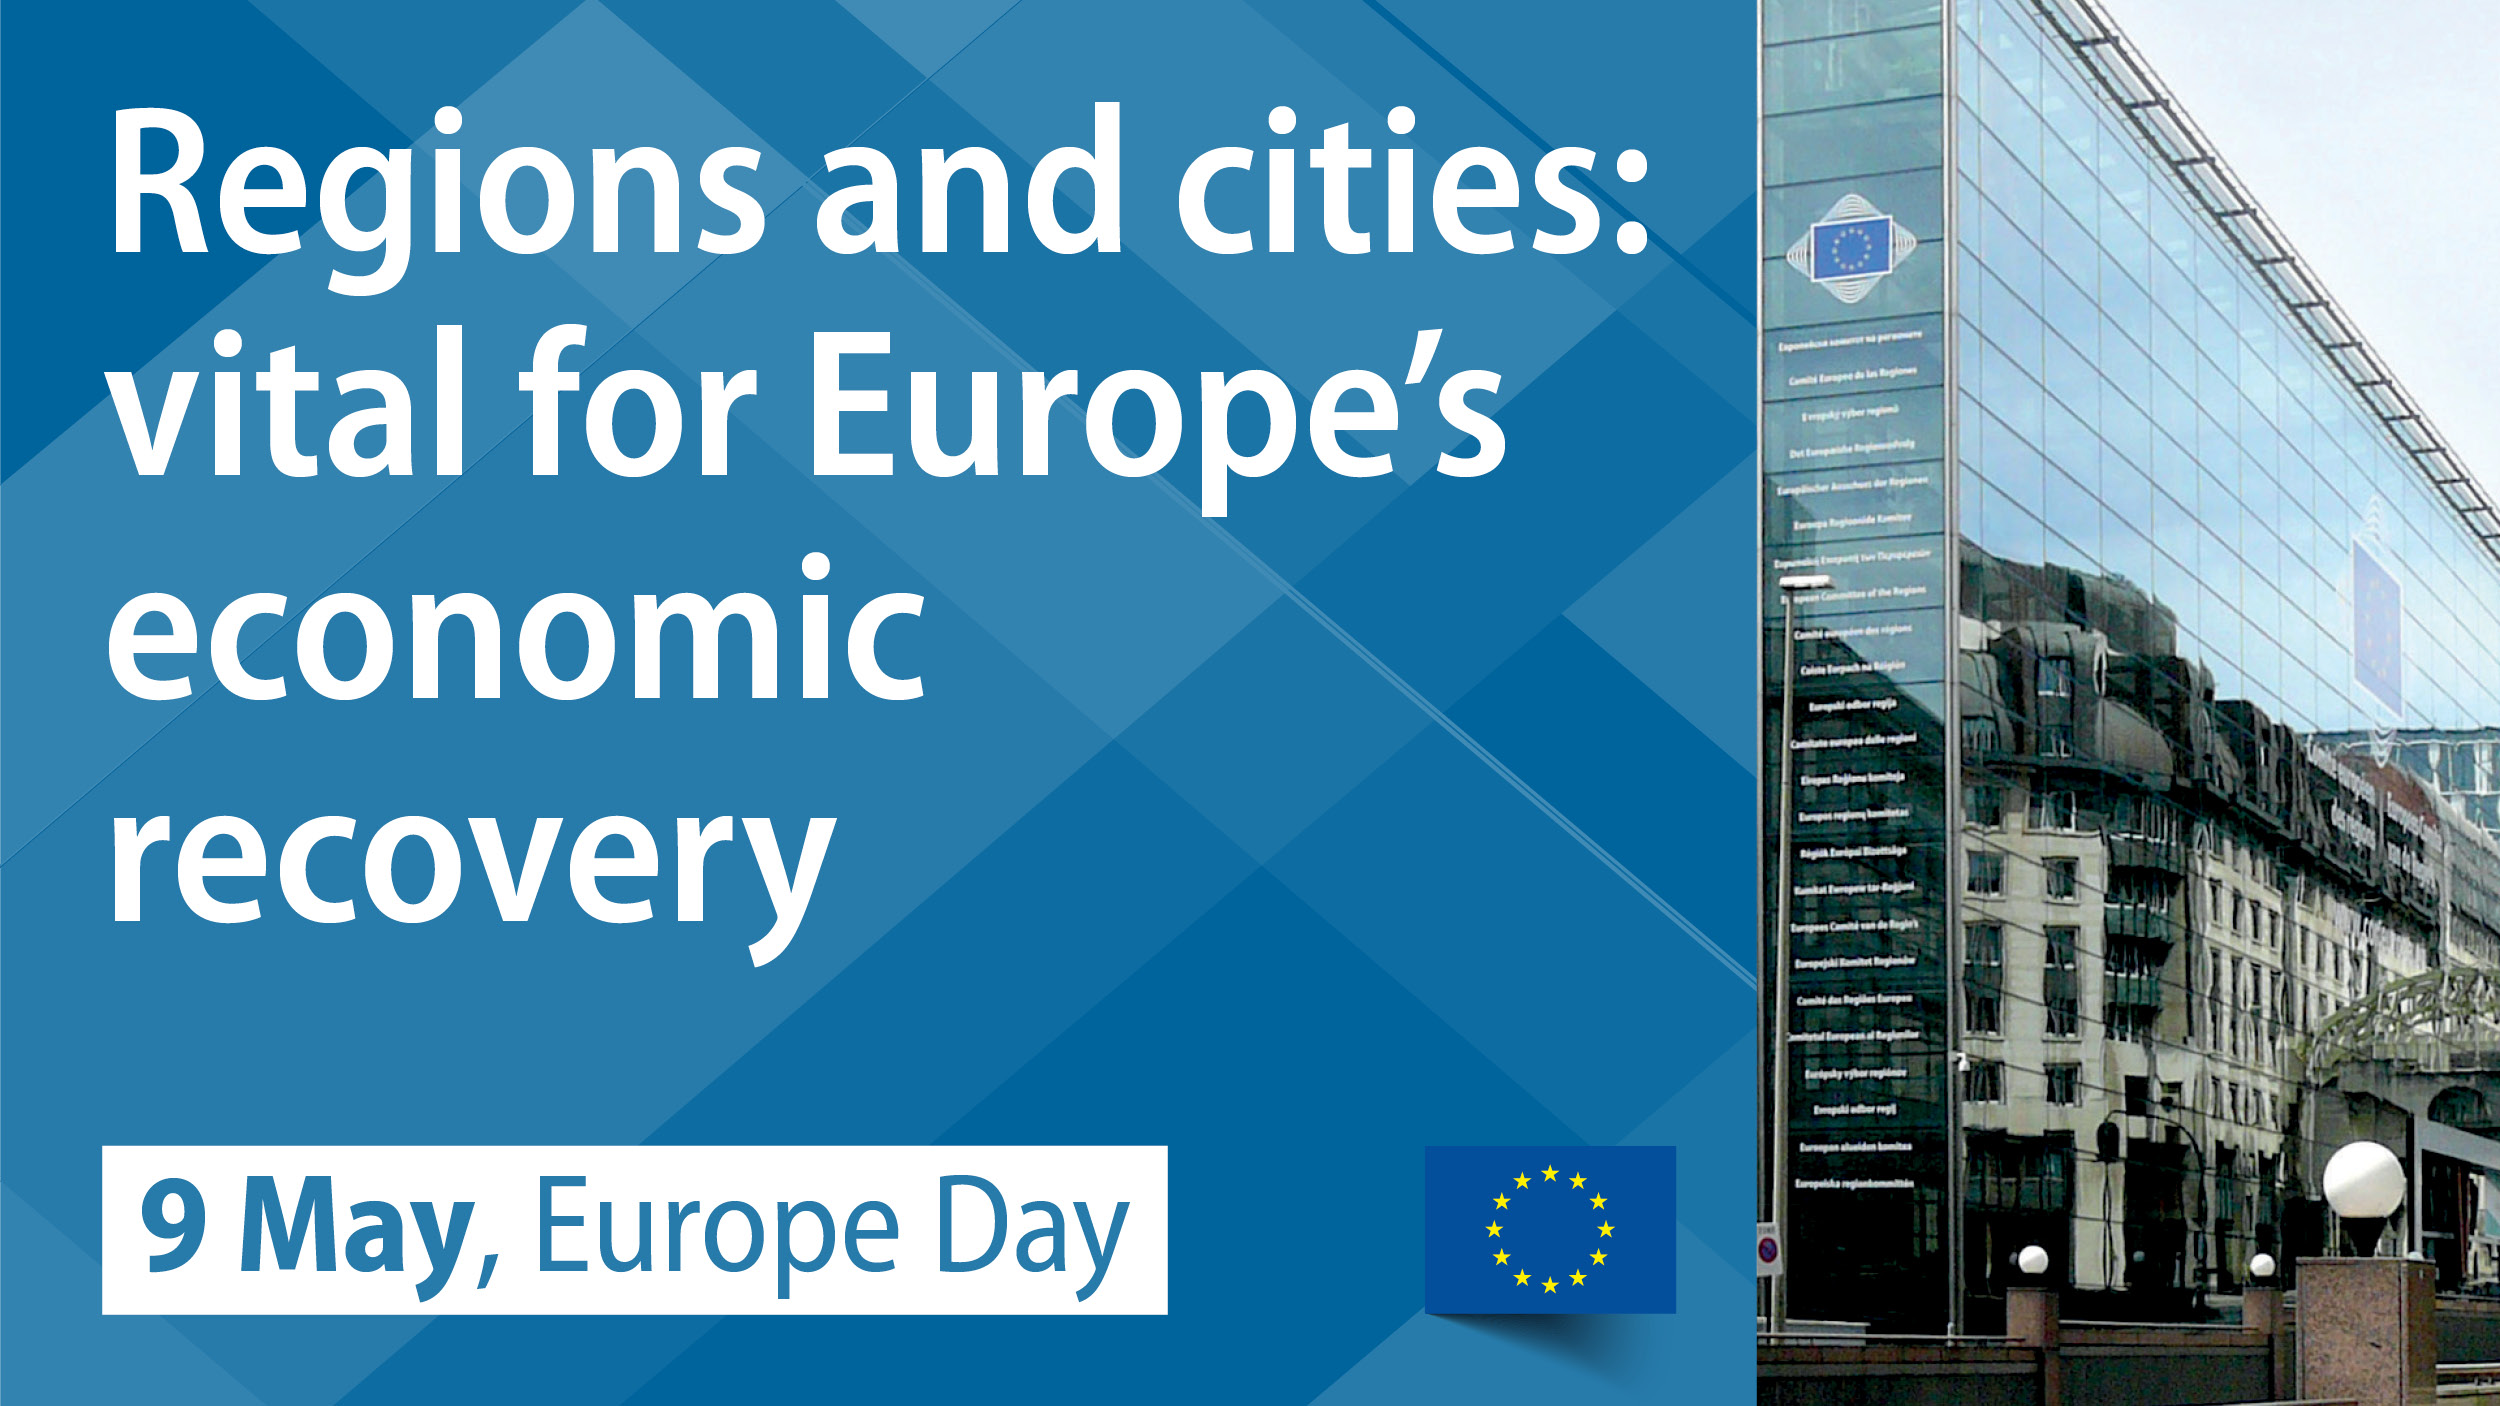 2. Regions and cities- vital for Europe's economic recovery